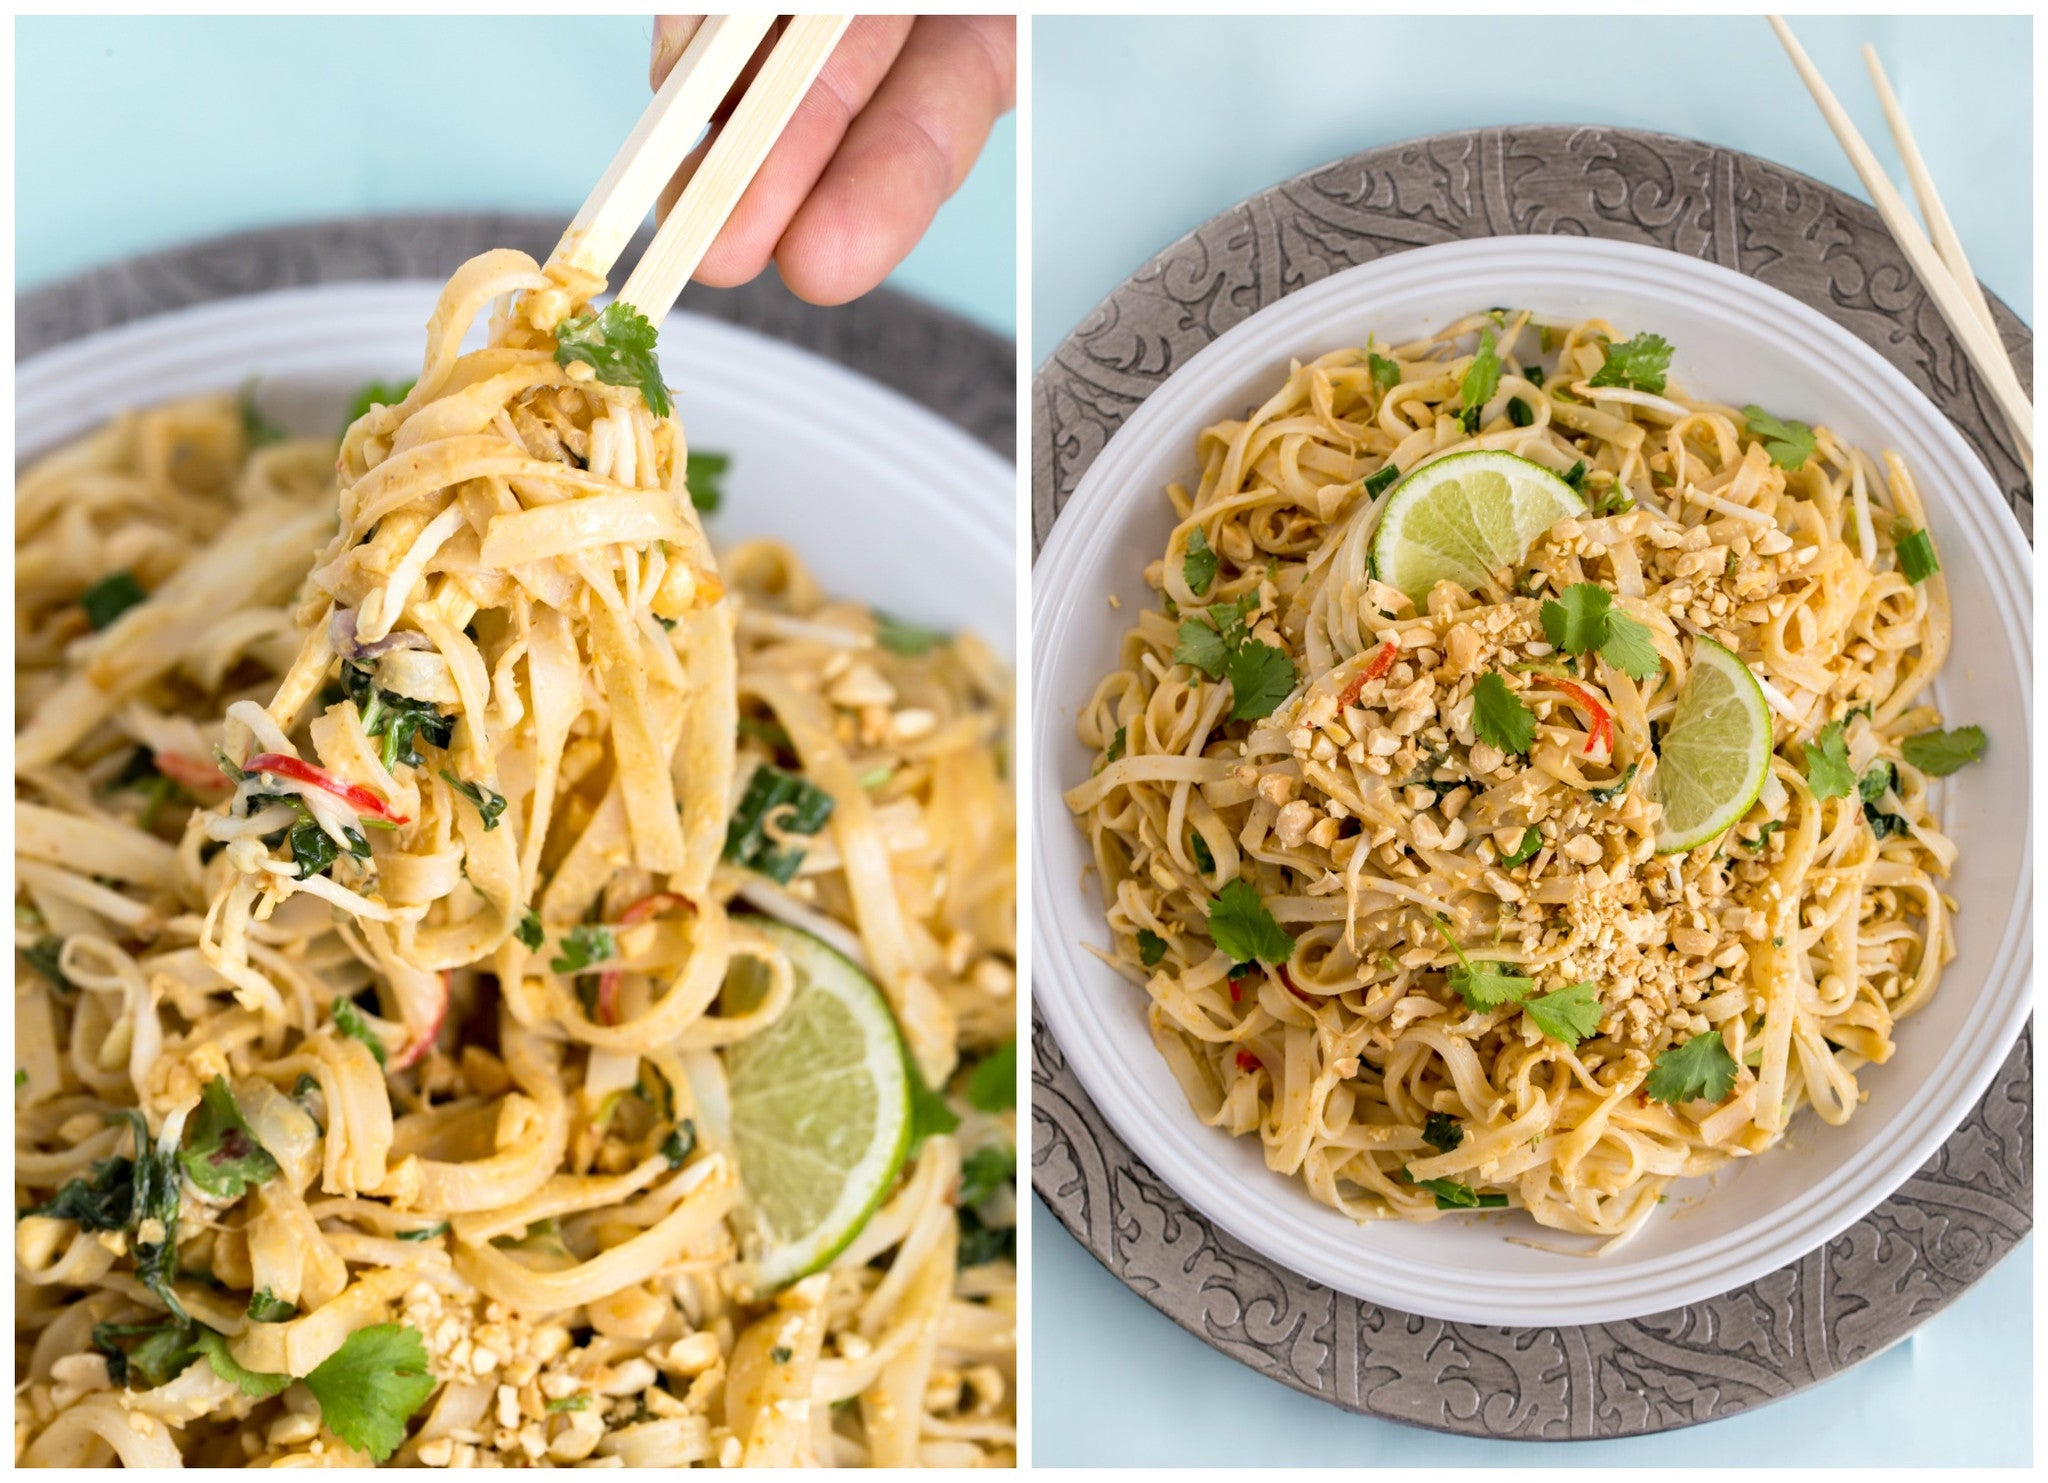 Noodles with Cambodian Coconut Peanut Sauce